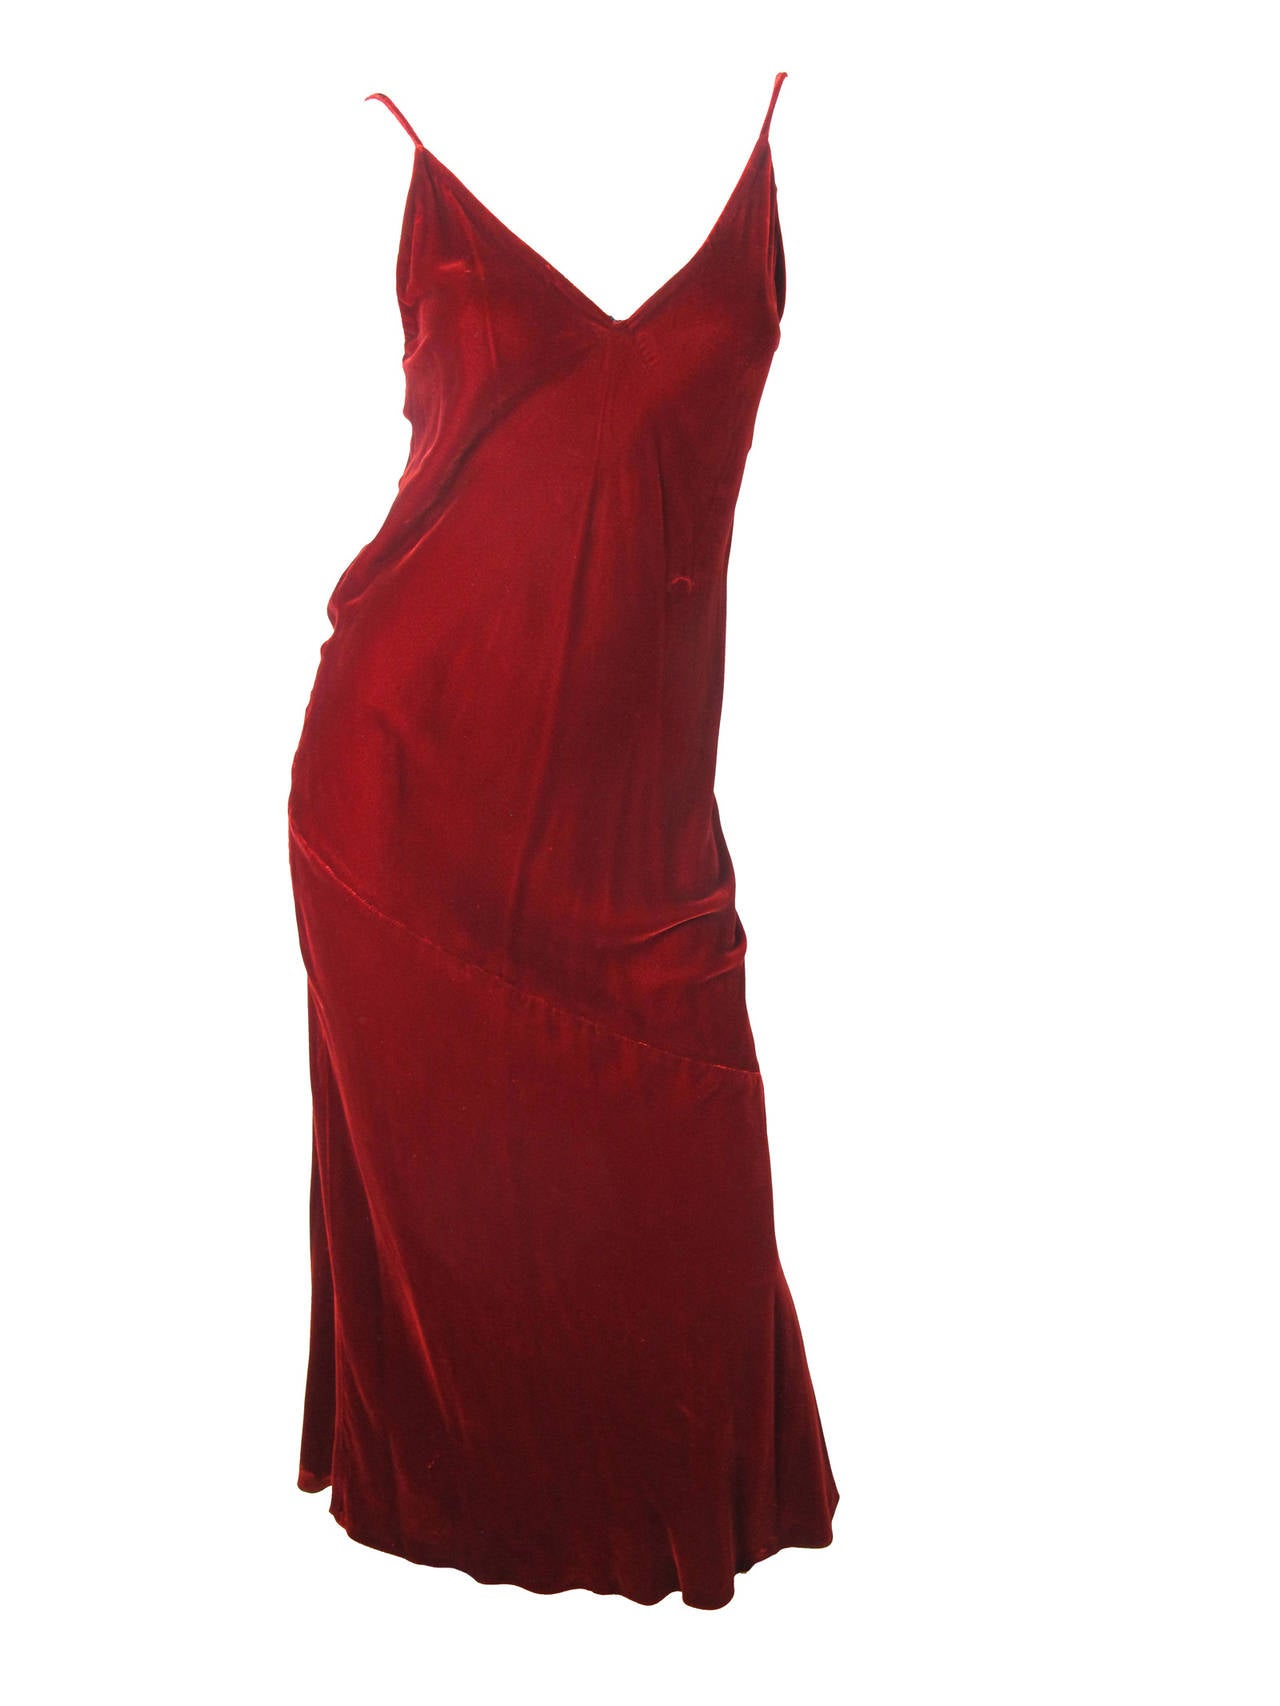 1990s Jean Paul Gaultier Velvet Gown with Large Fabric Beads 2